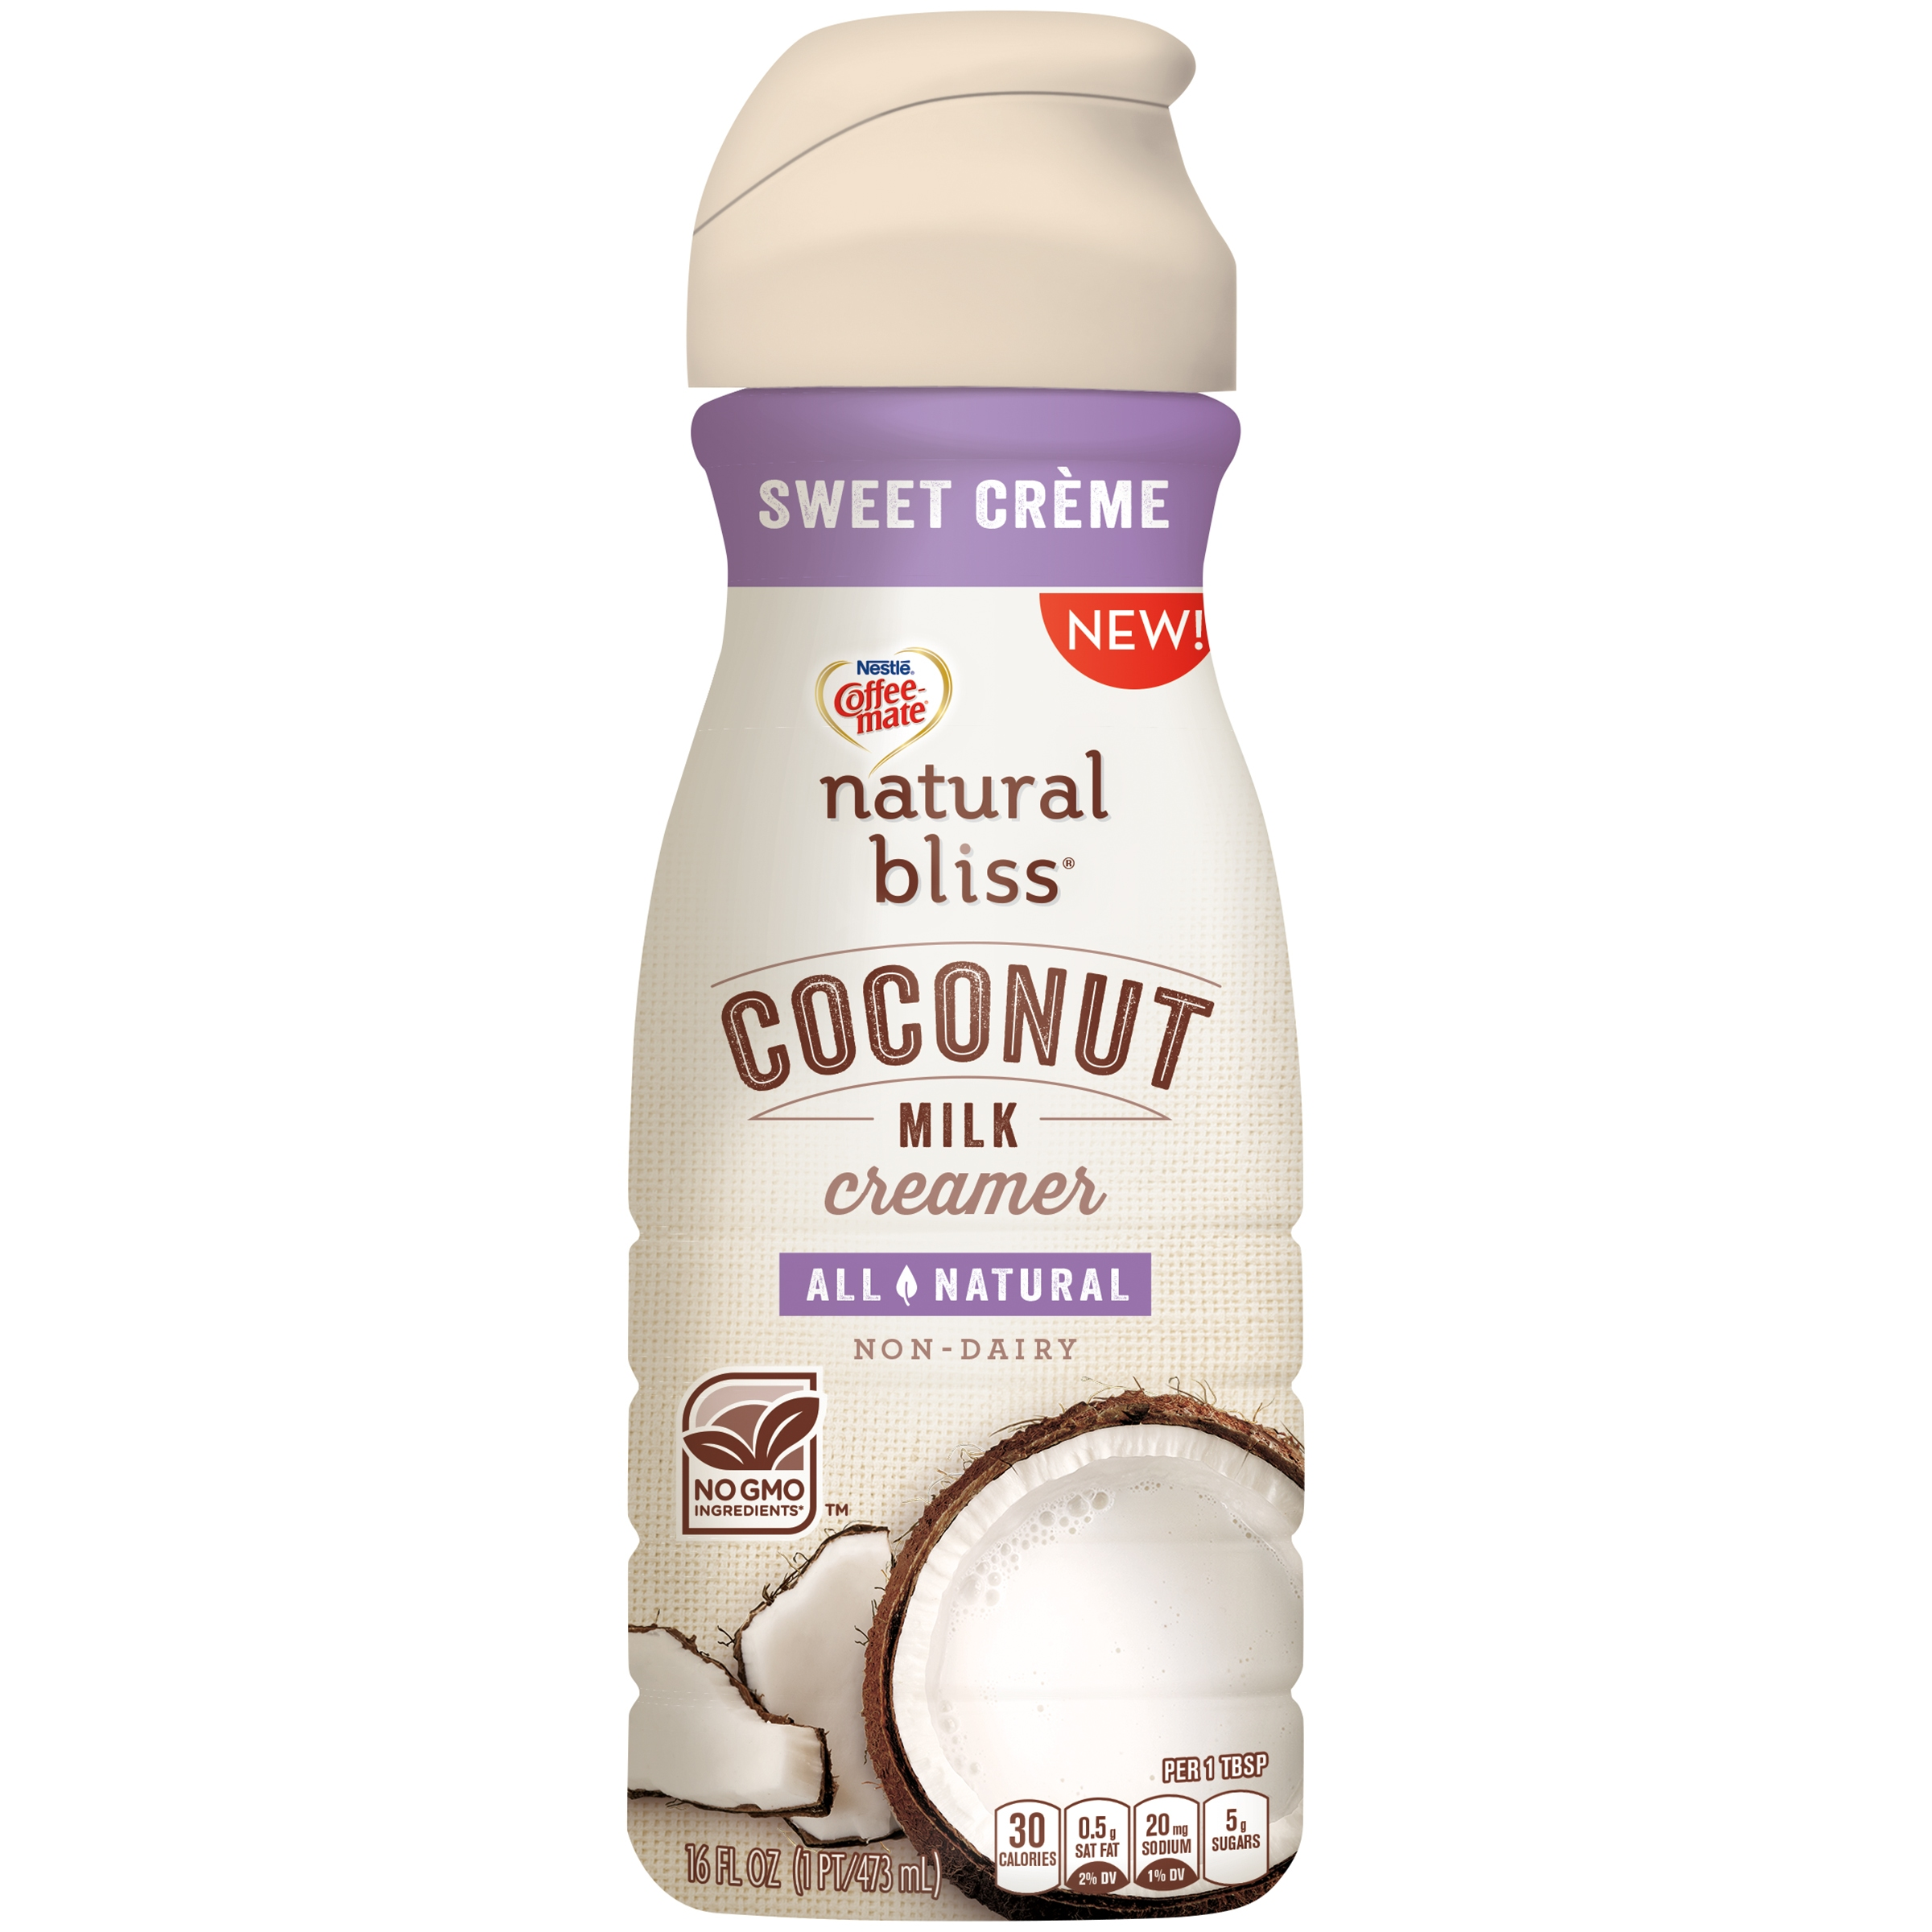 Coffee-Mate Natural Bliss All Natural Coconut Milk Sweet Creme Liquid Coffee Creamer, 16 oz